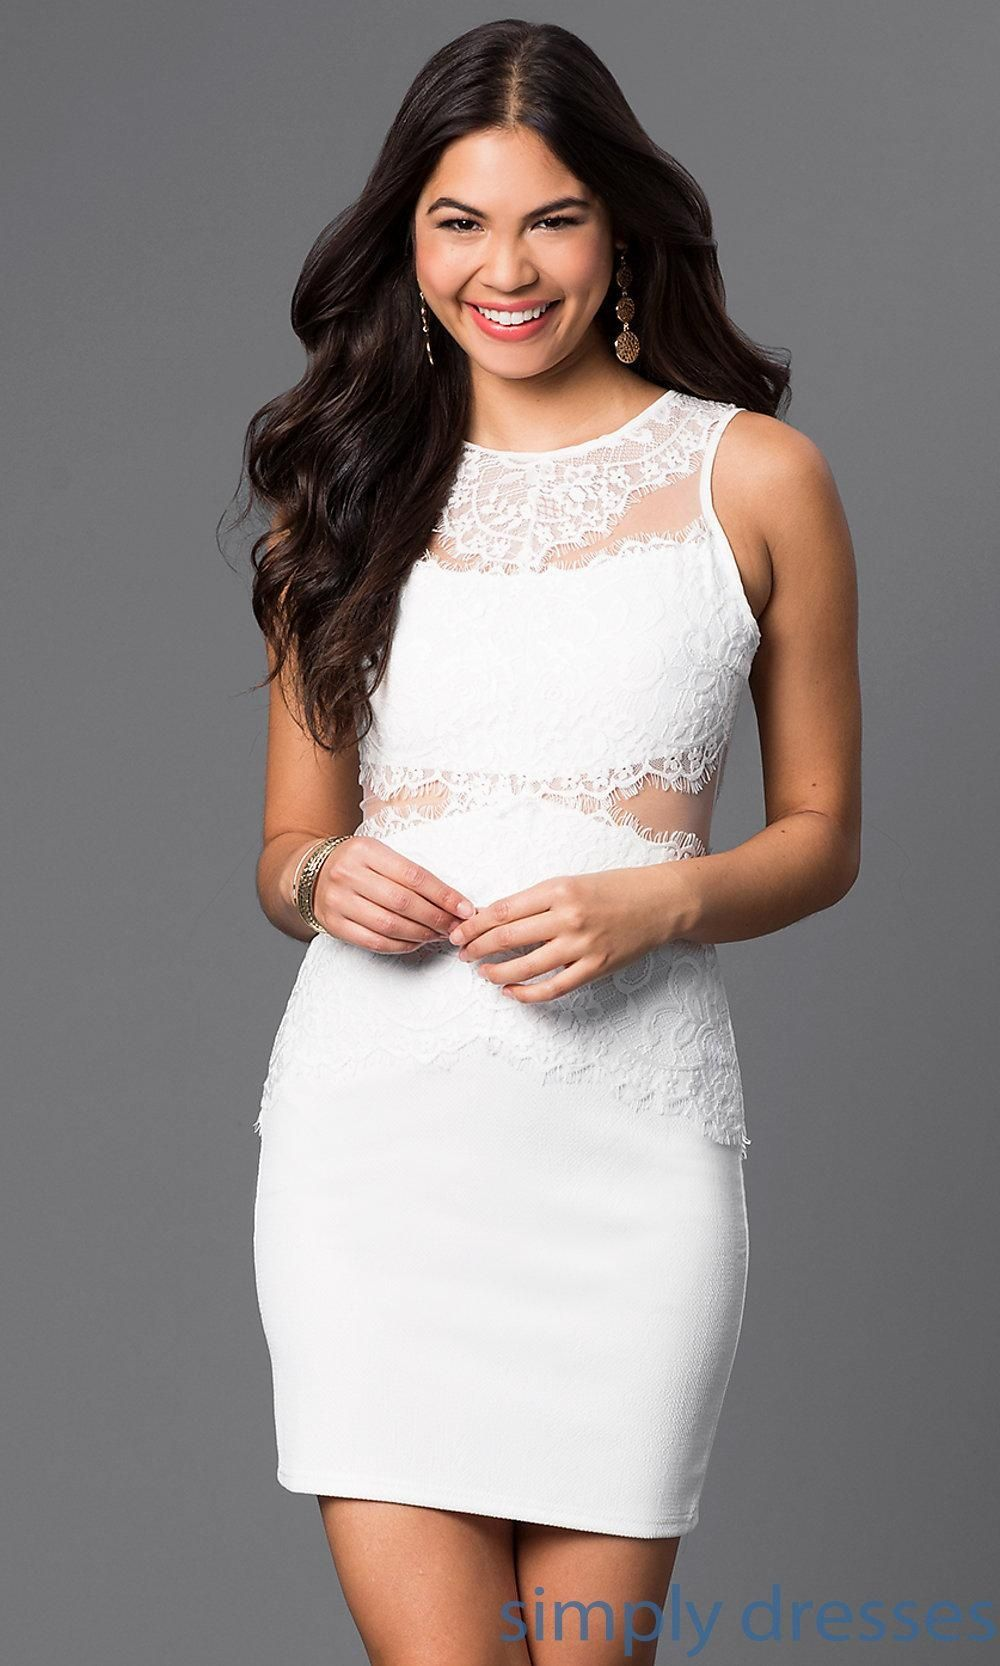 Sheer and lace embellished short dress brought to you by avarsha